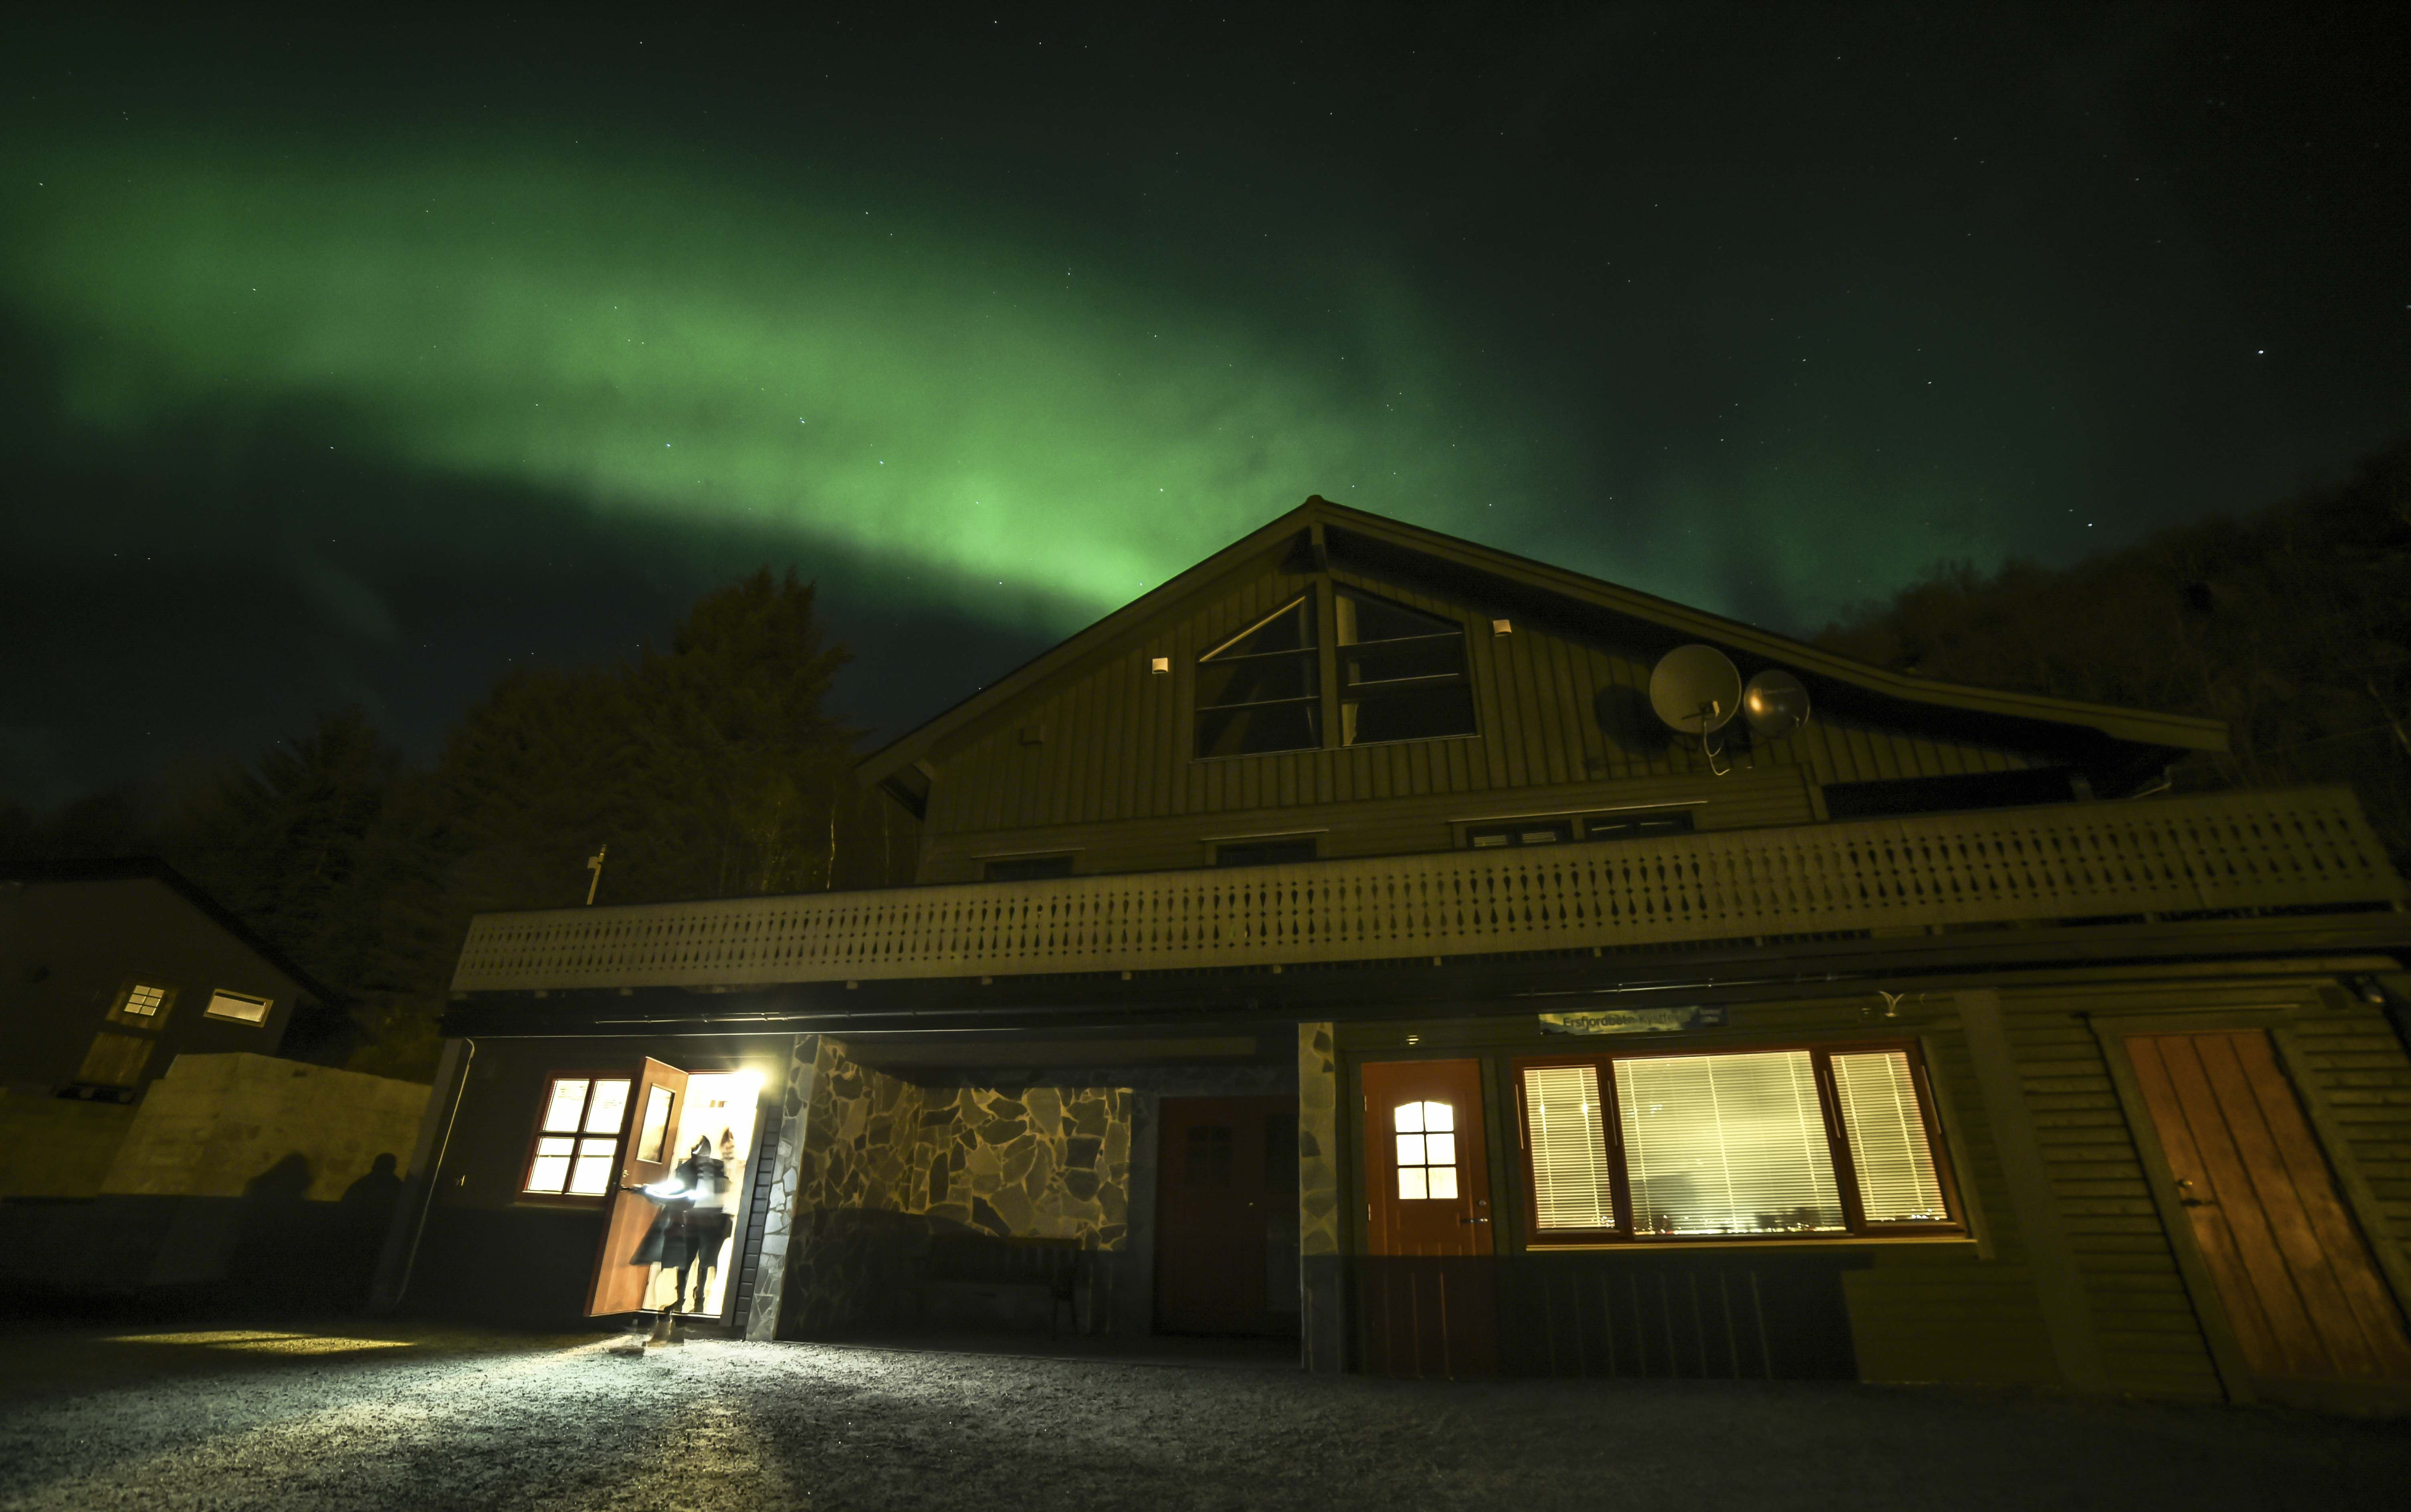 Nordlys over Ersfjorden - The Green Adventure